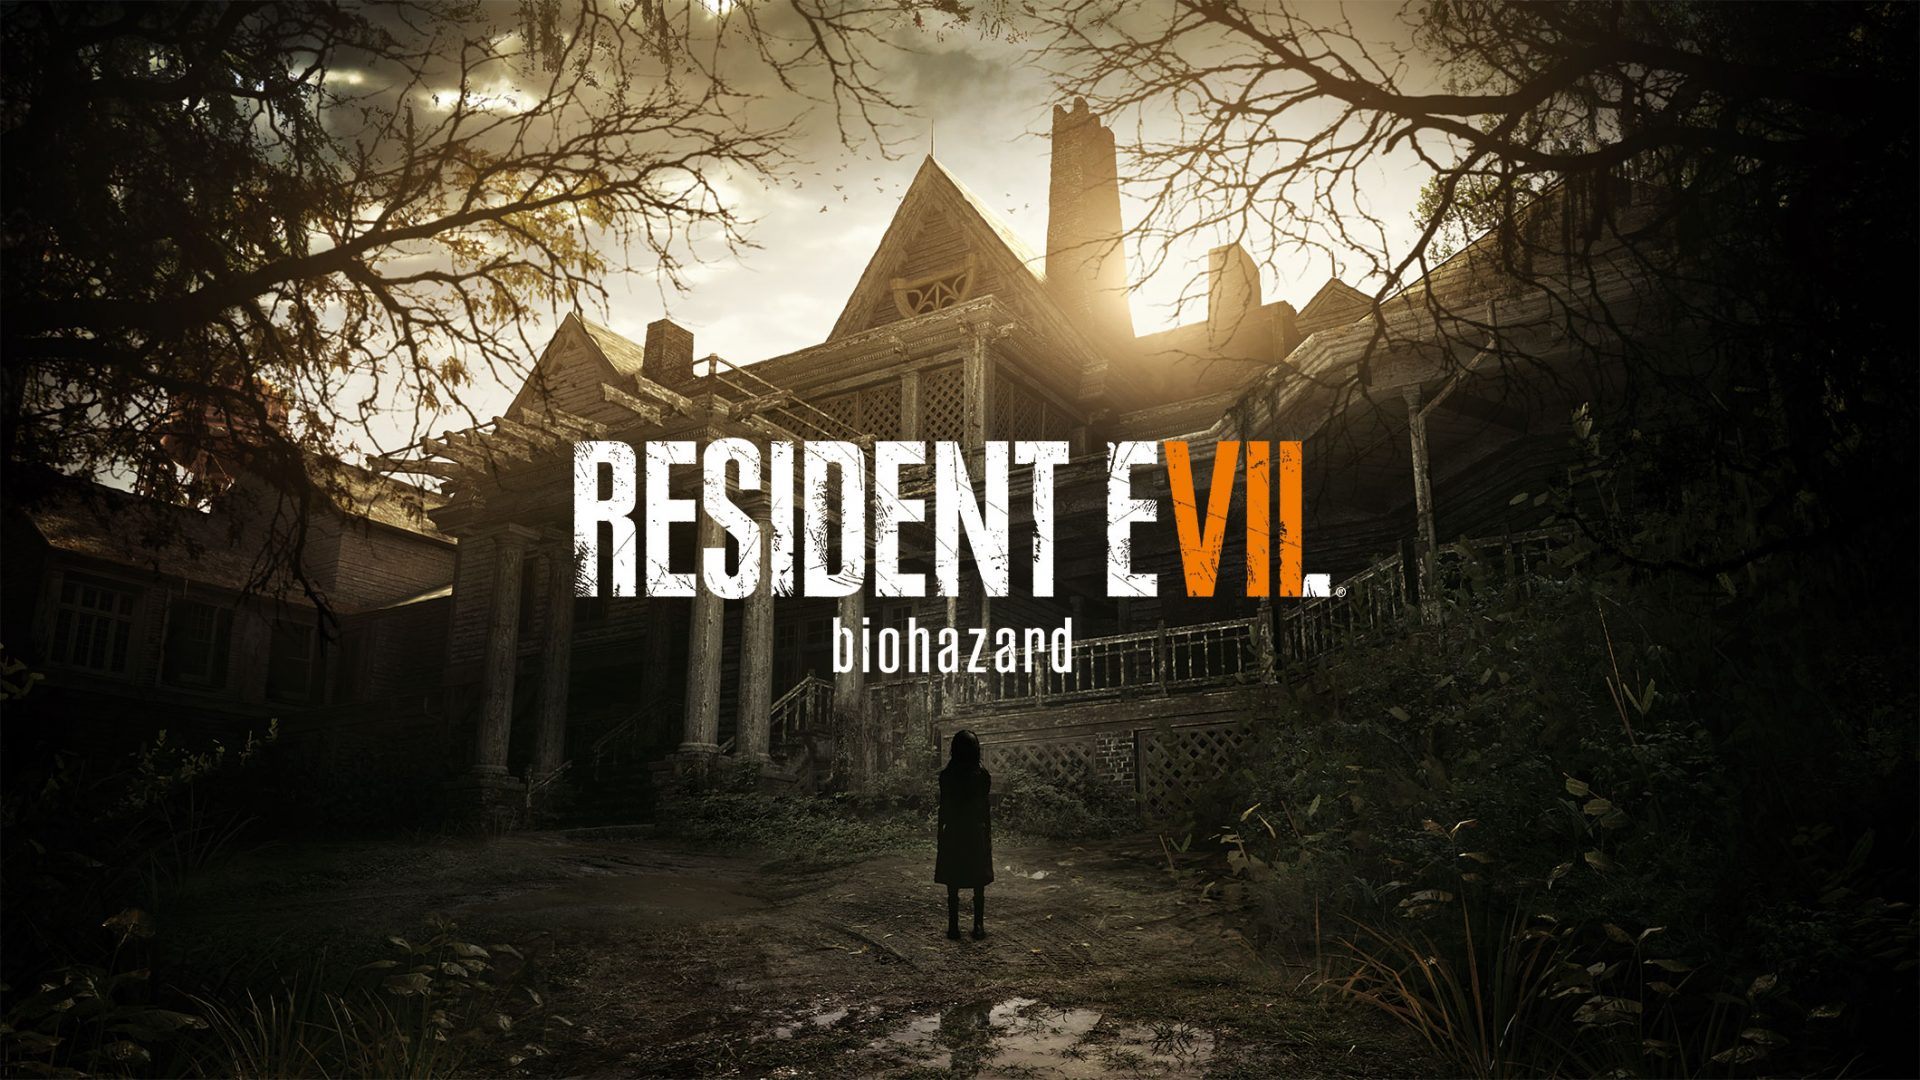 Capcom Discusses Resident Evil 7 Sales Projections and Movie Plans